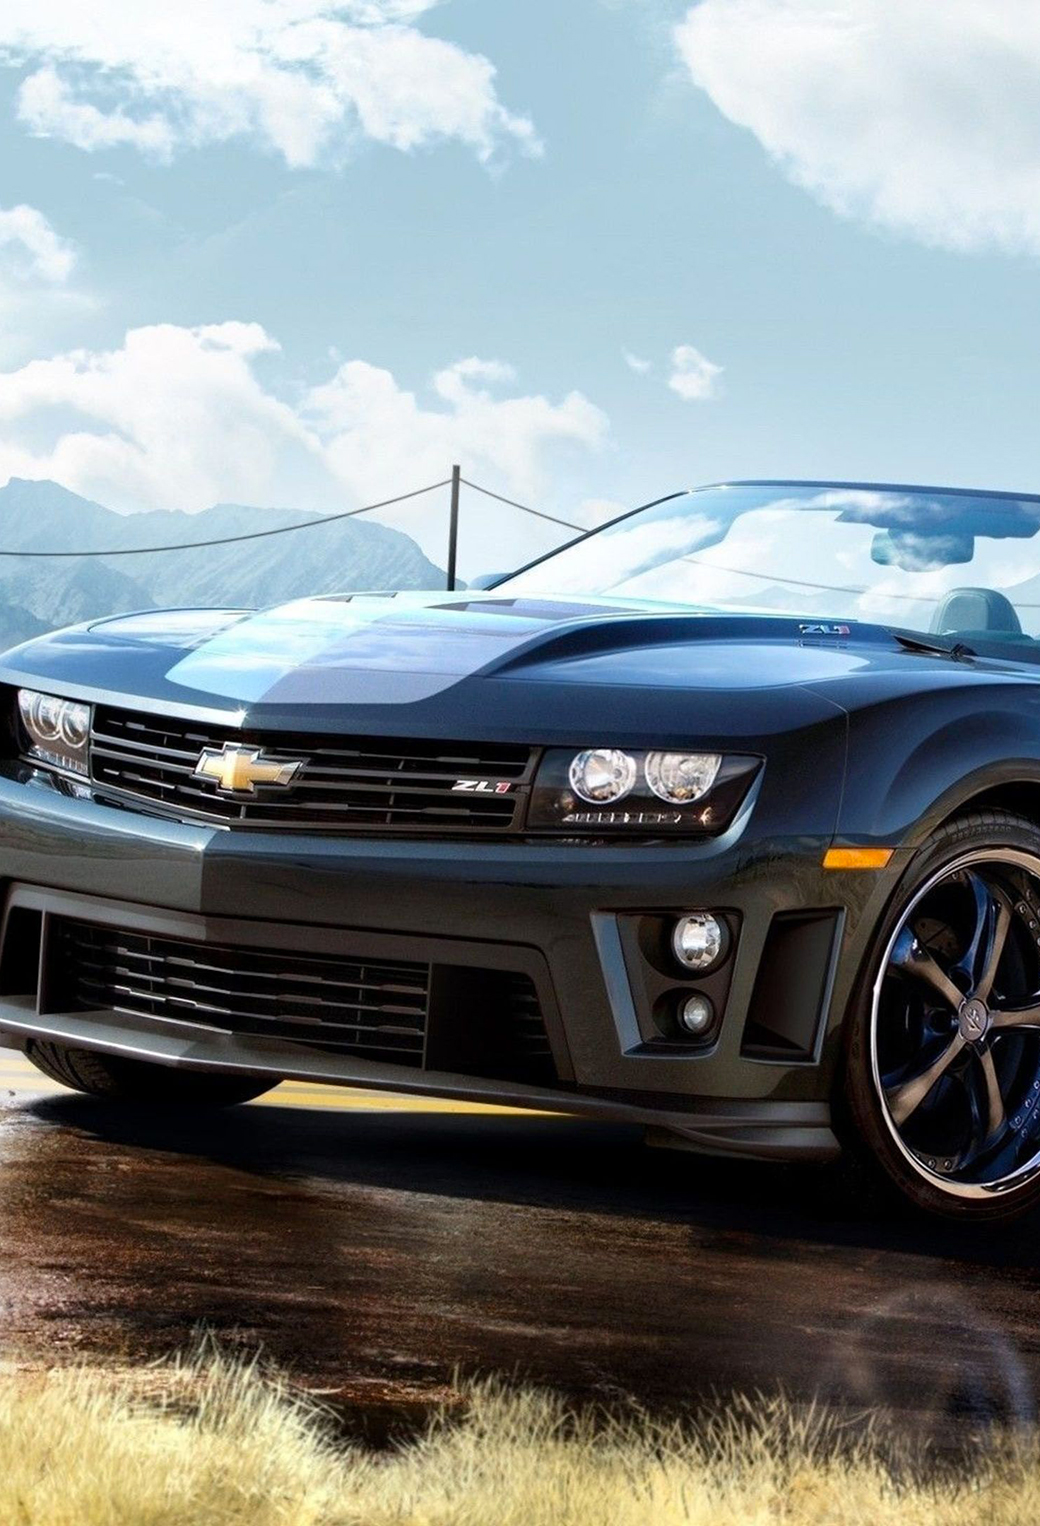 Chevrolet Camaro Zl1 Wallpaper For Iphone X 8 7 6 Free Download On 3wallpapers